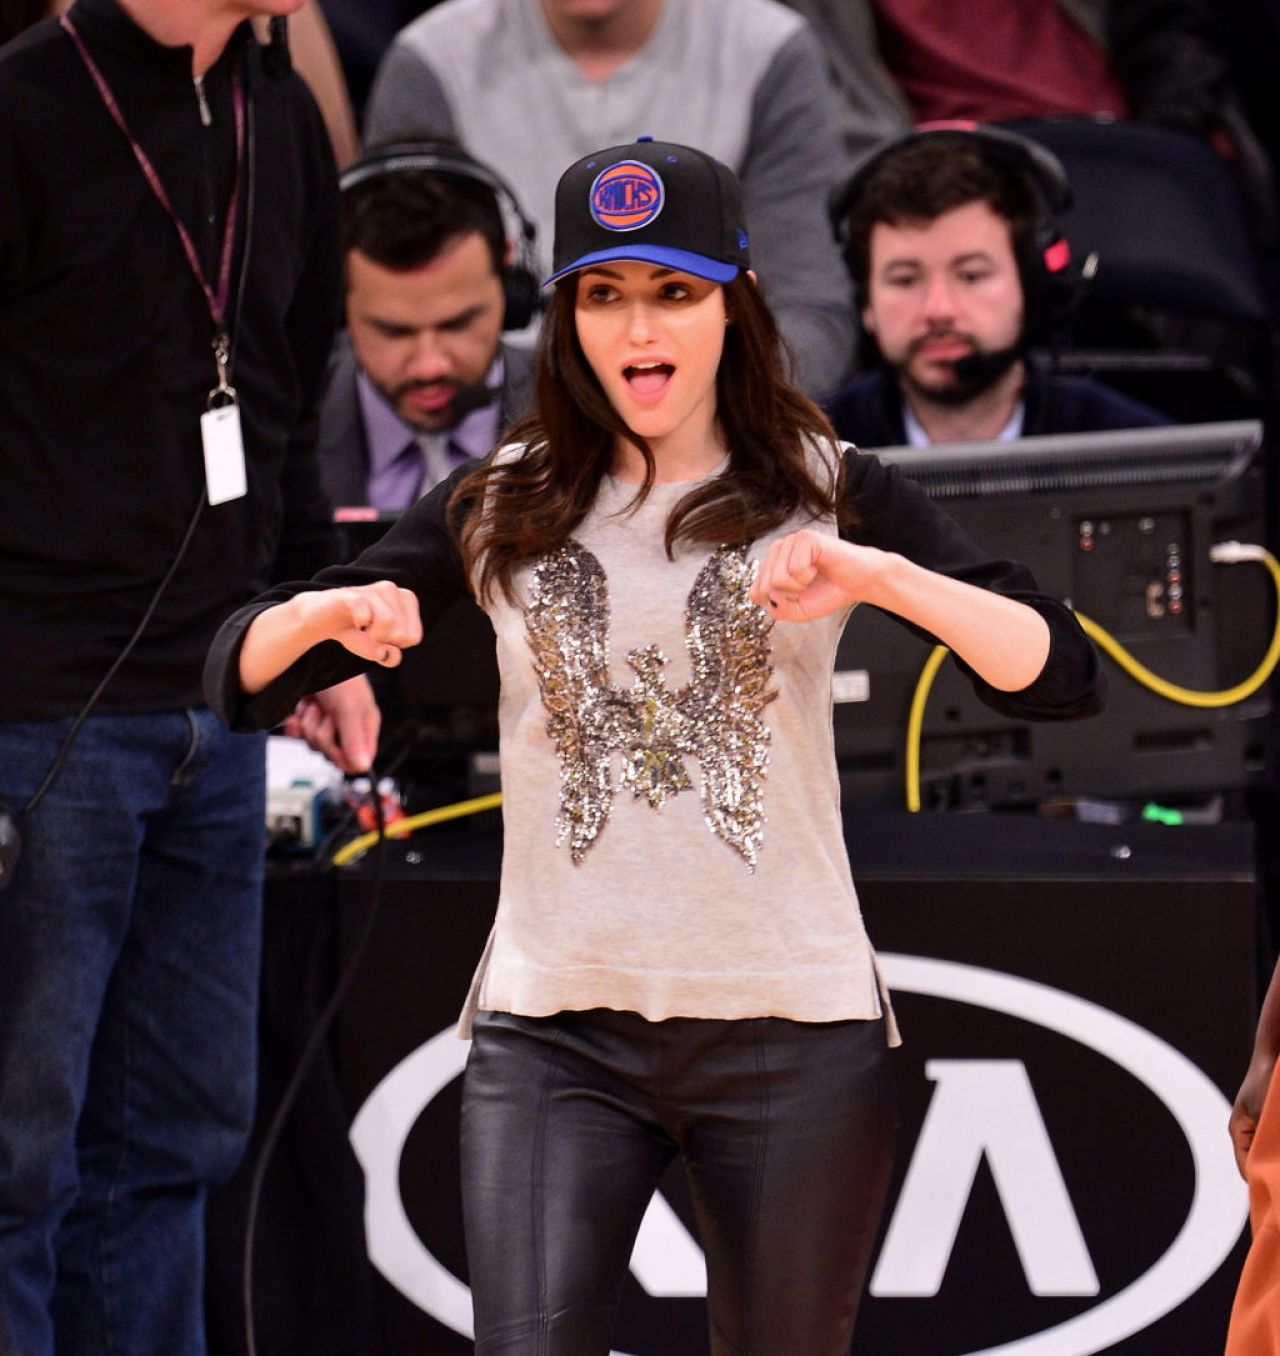 Emmy Rossum at the Knicks Game in New York City - March 2014